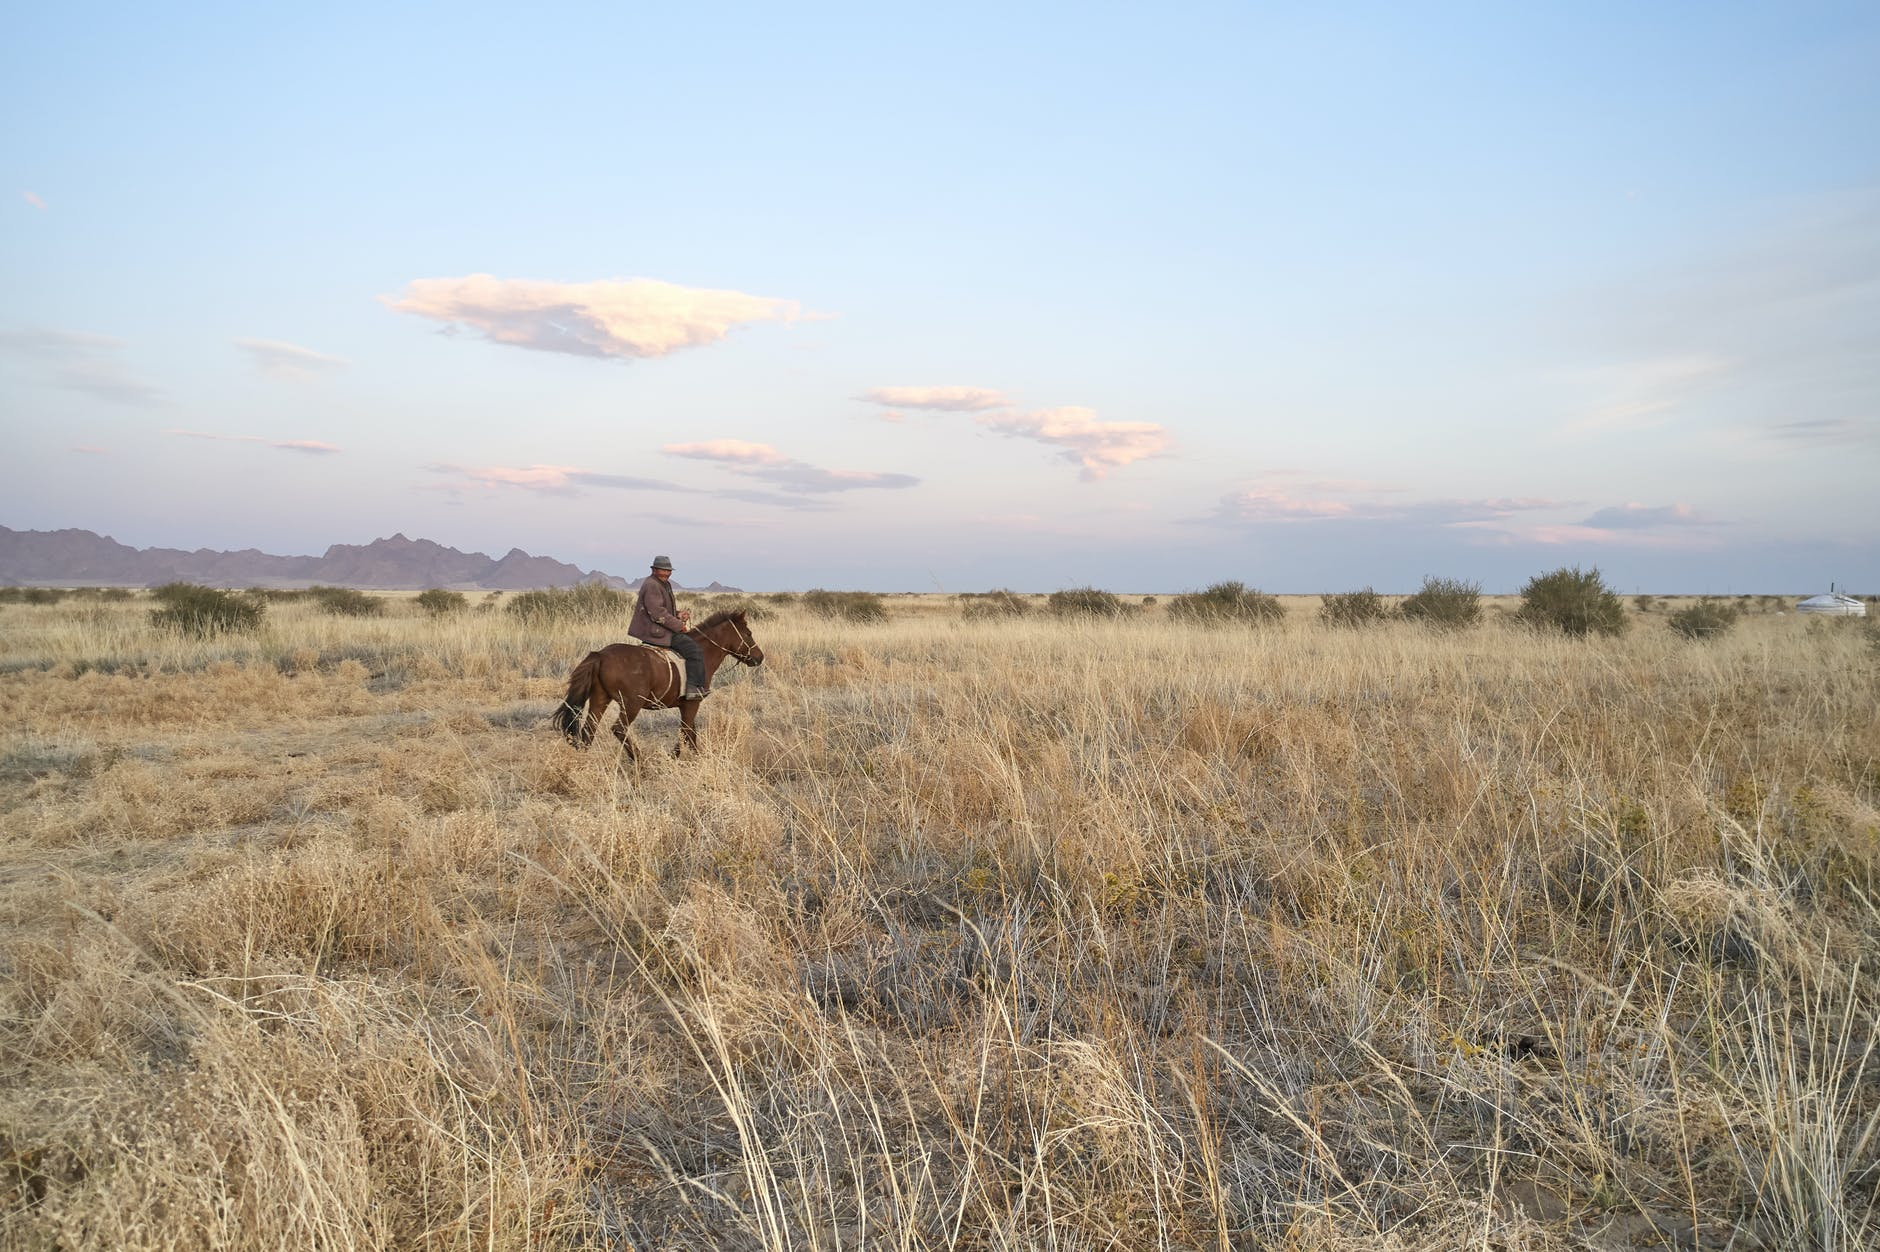 cattle man riding horse in remote field